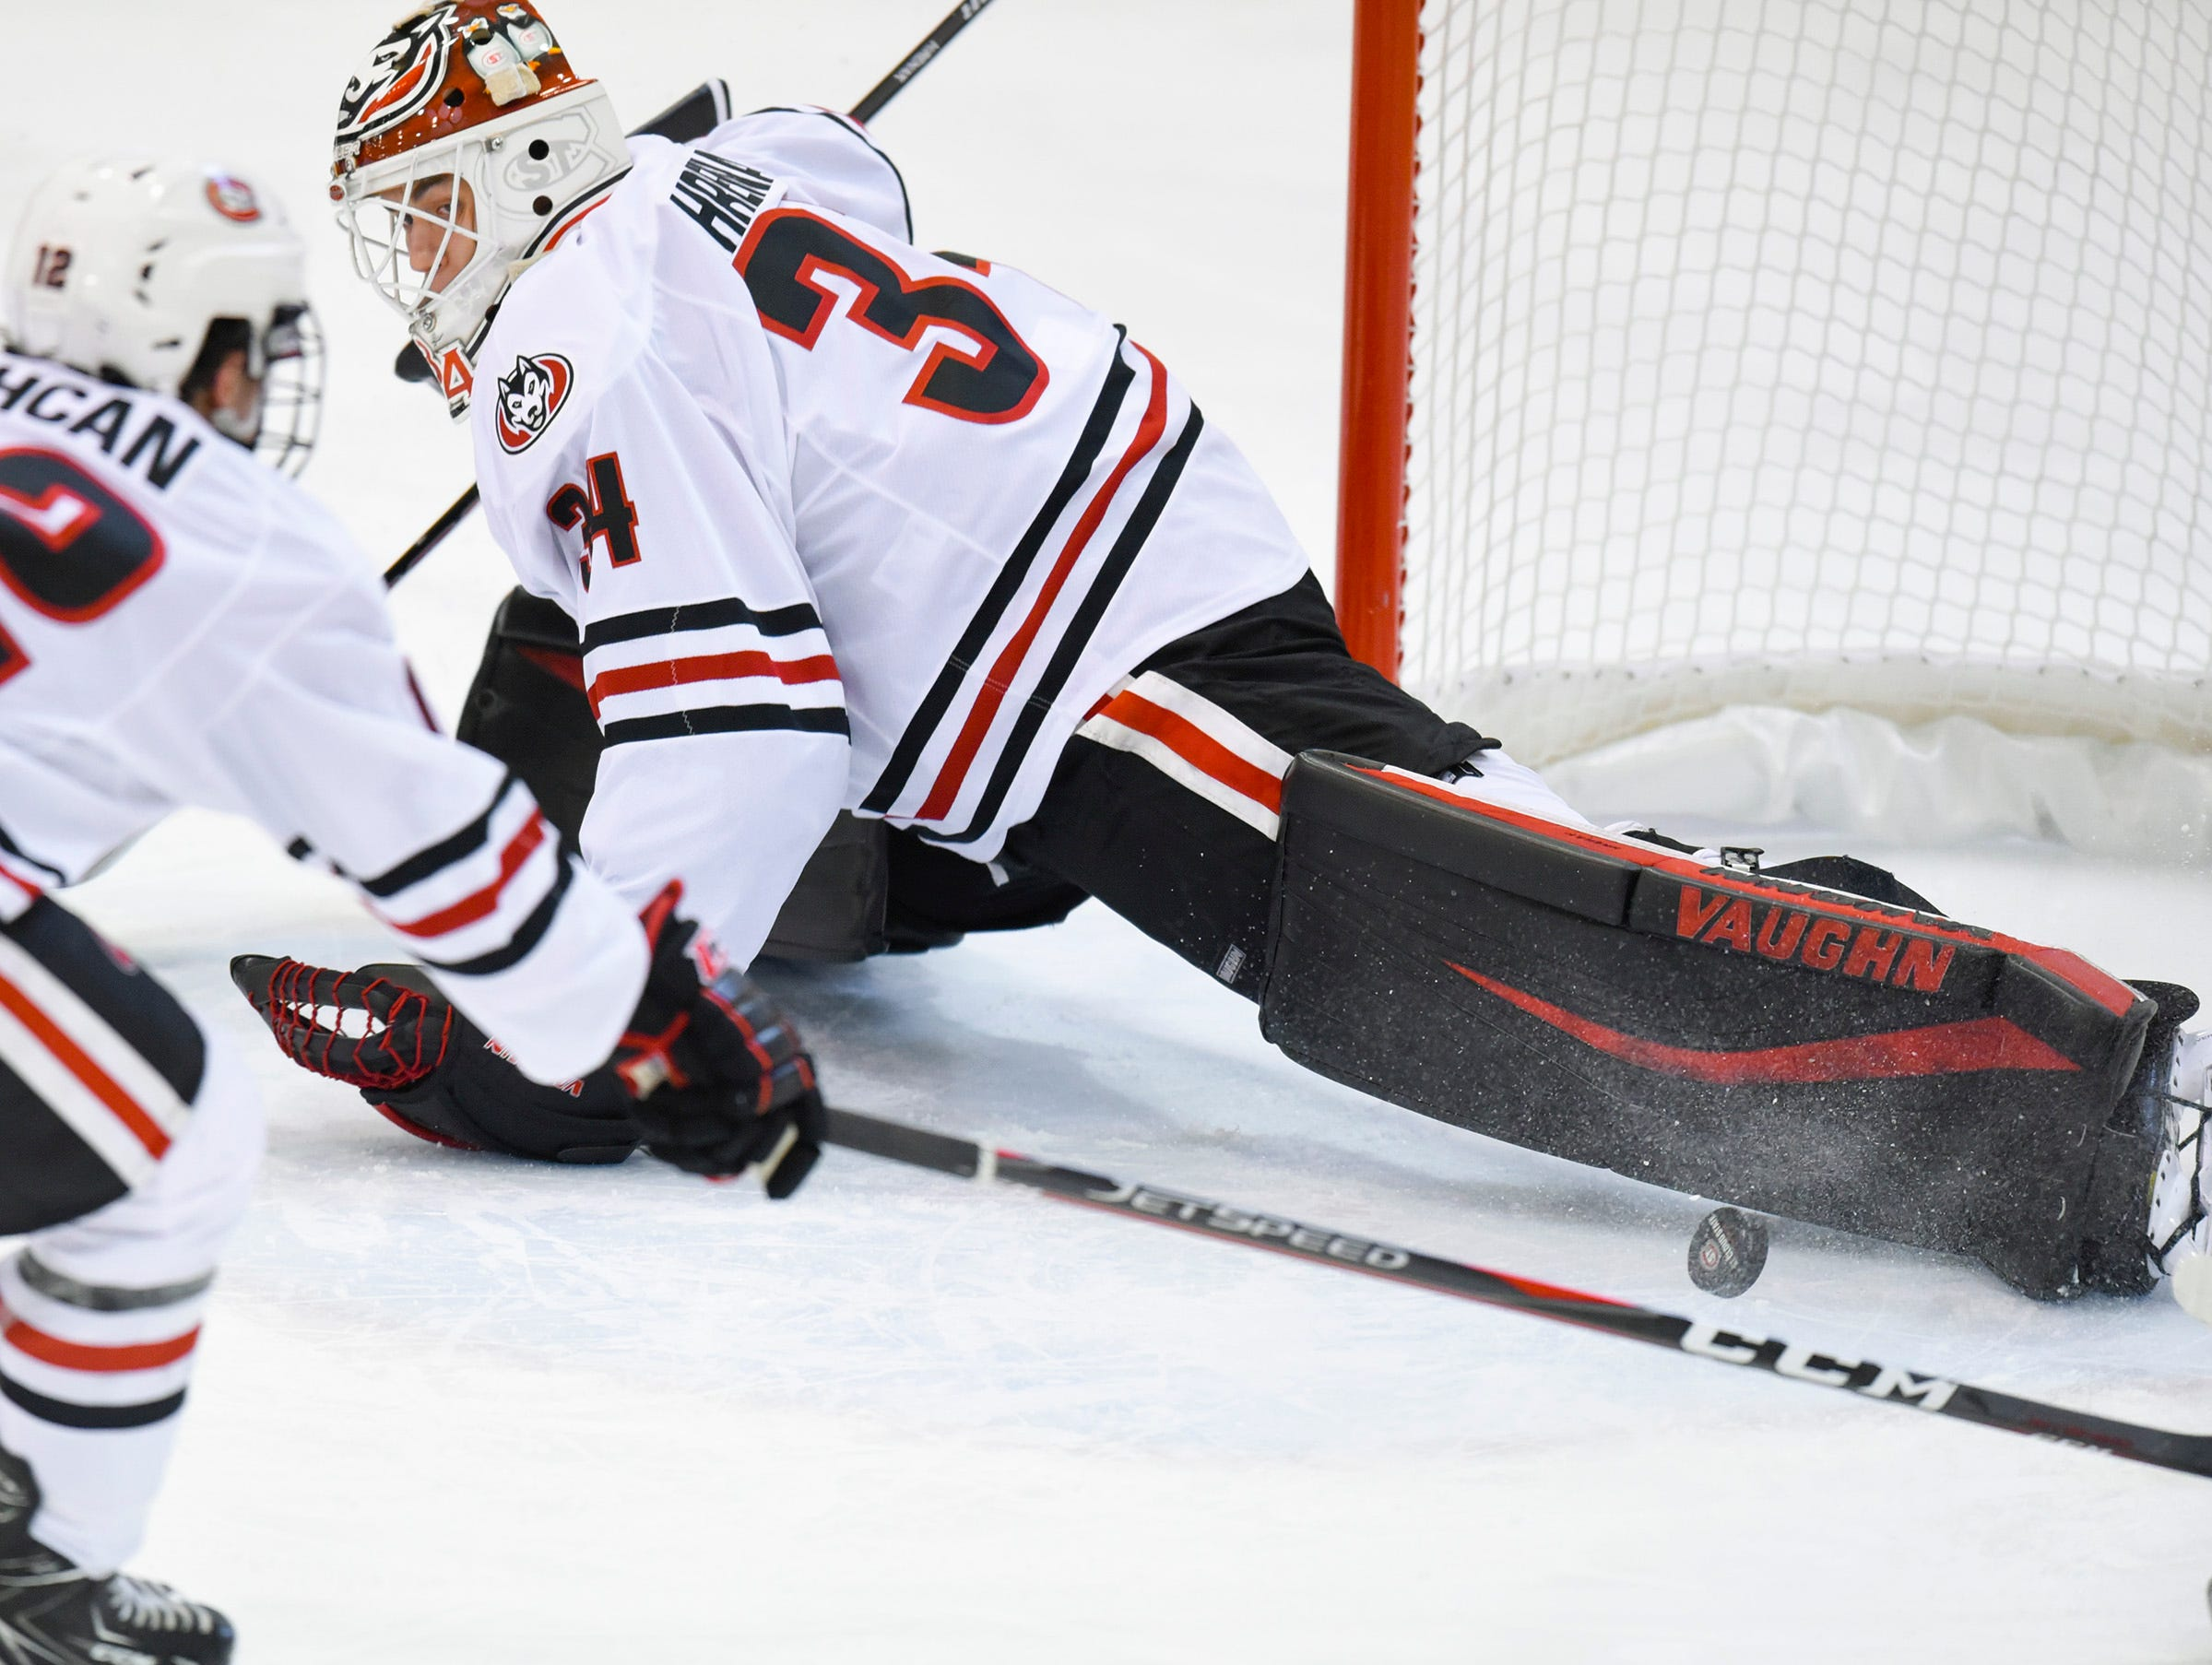 St. Cloud State goalie David Hrenak stops the puck with his pad against Nebraska-Omaha during the first period Saturday, Dec. 8, at the Herb Brooks National Hockey Center.